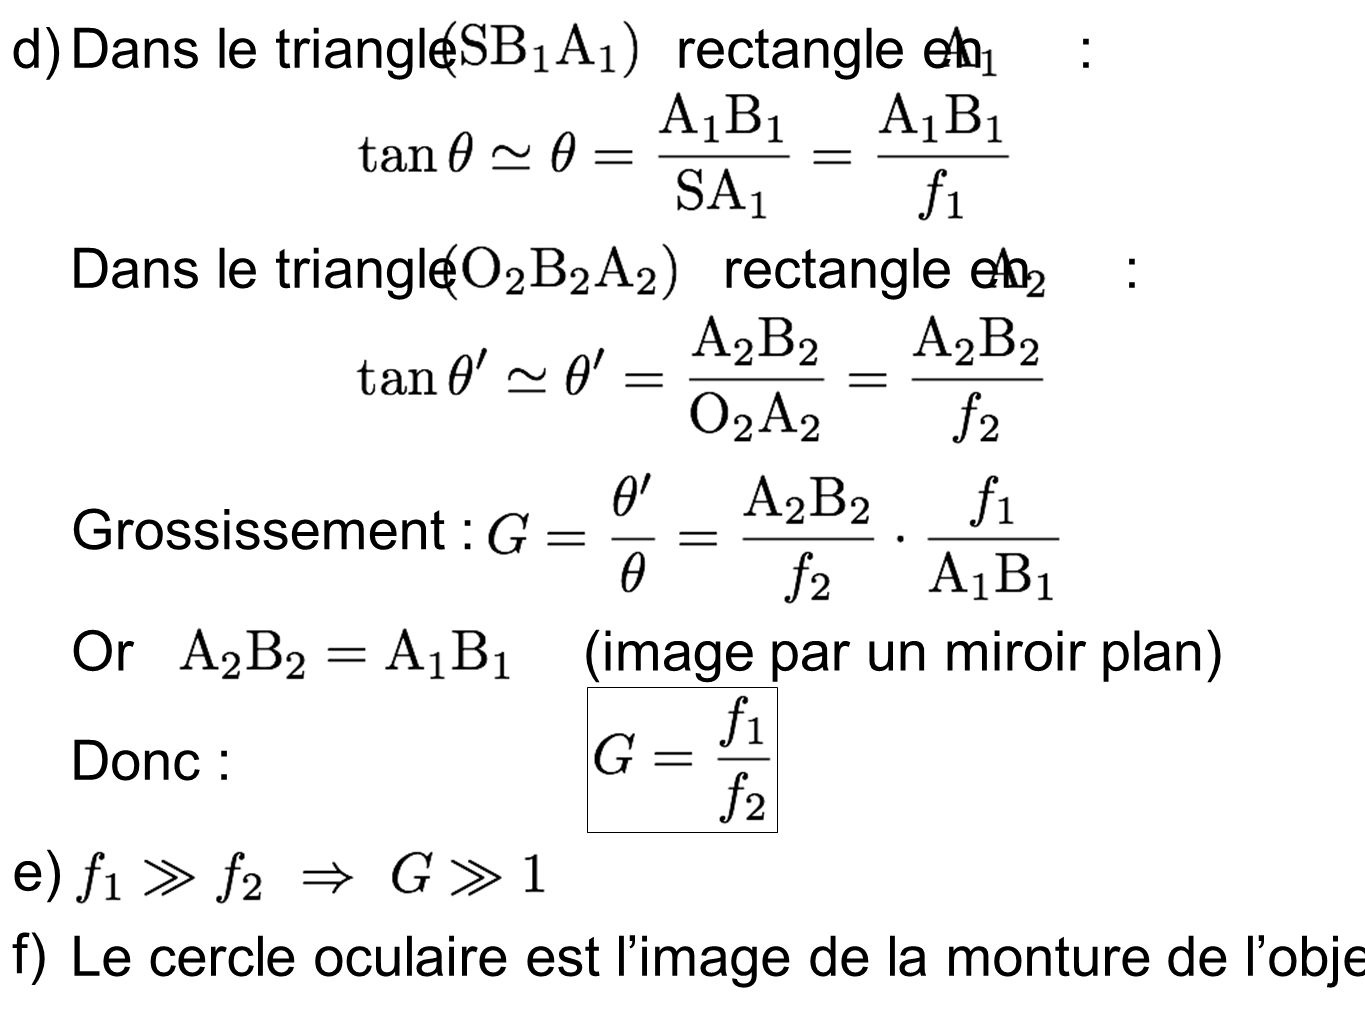 d) Dans le triangle rectangle en : Dans le triangle rectangle en :